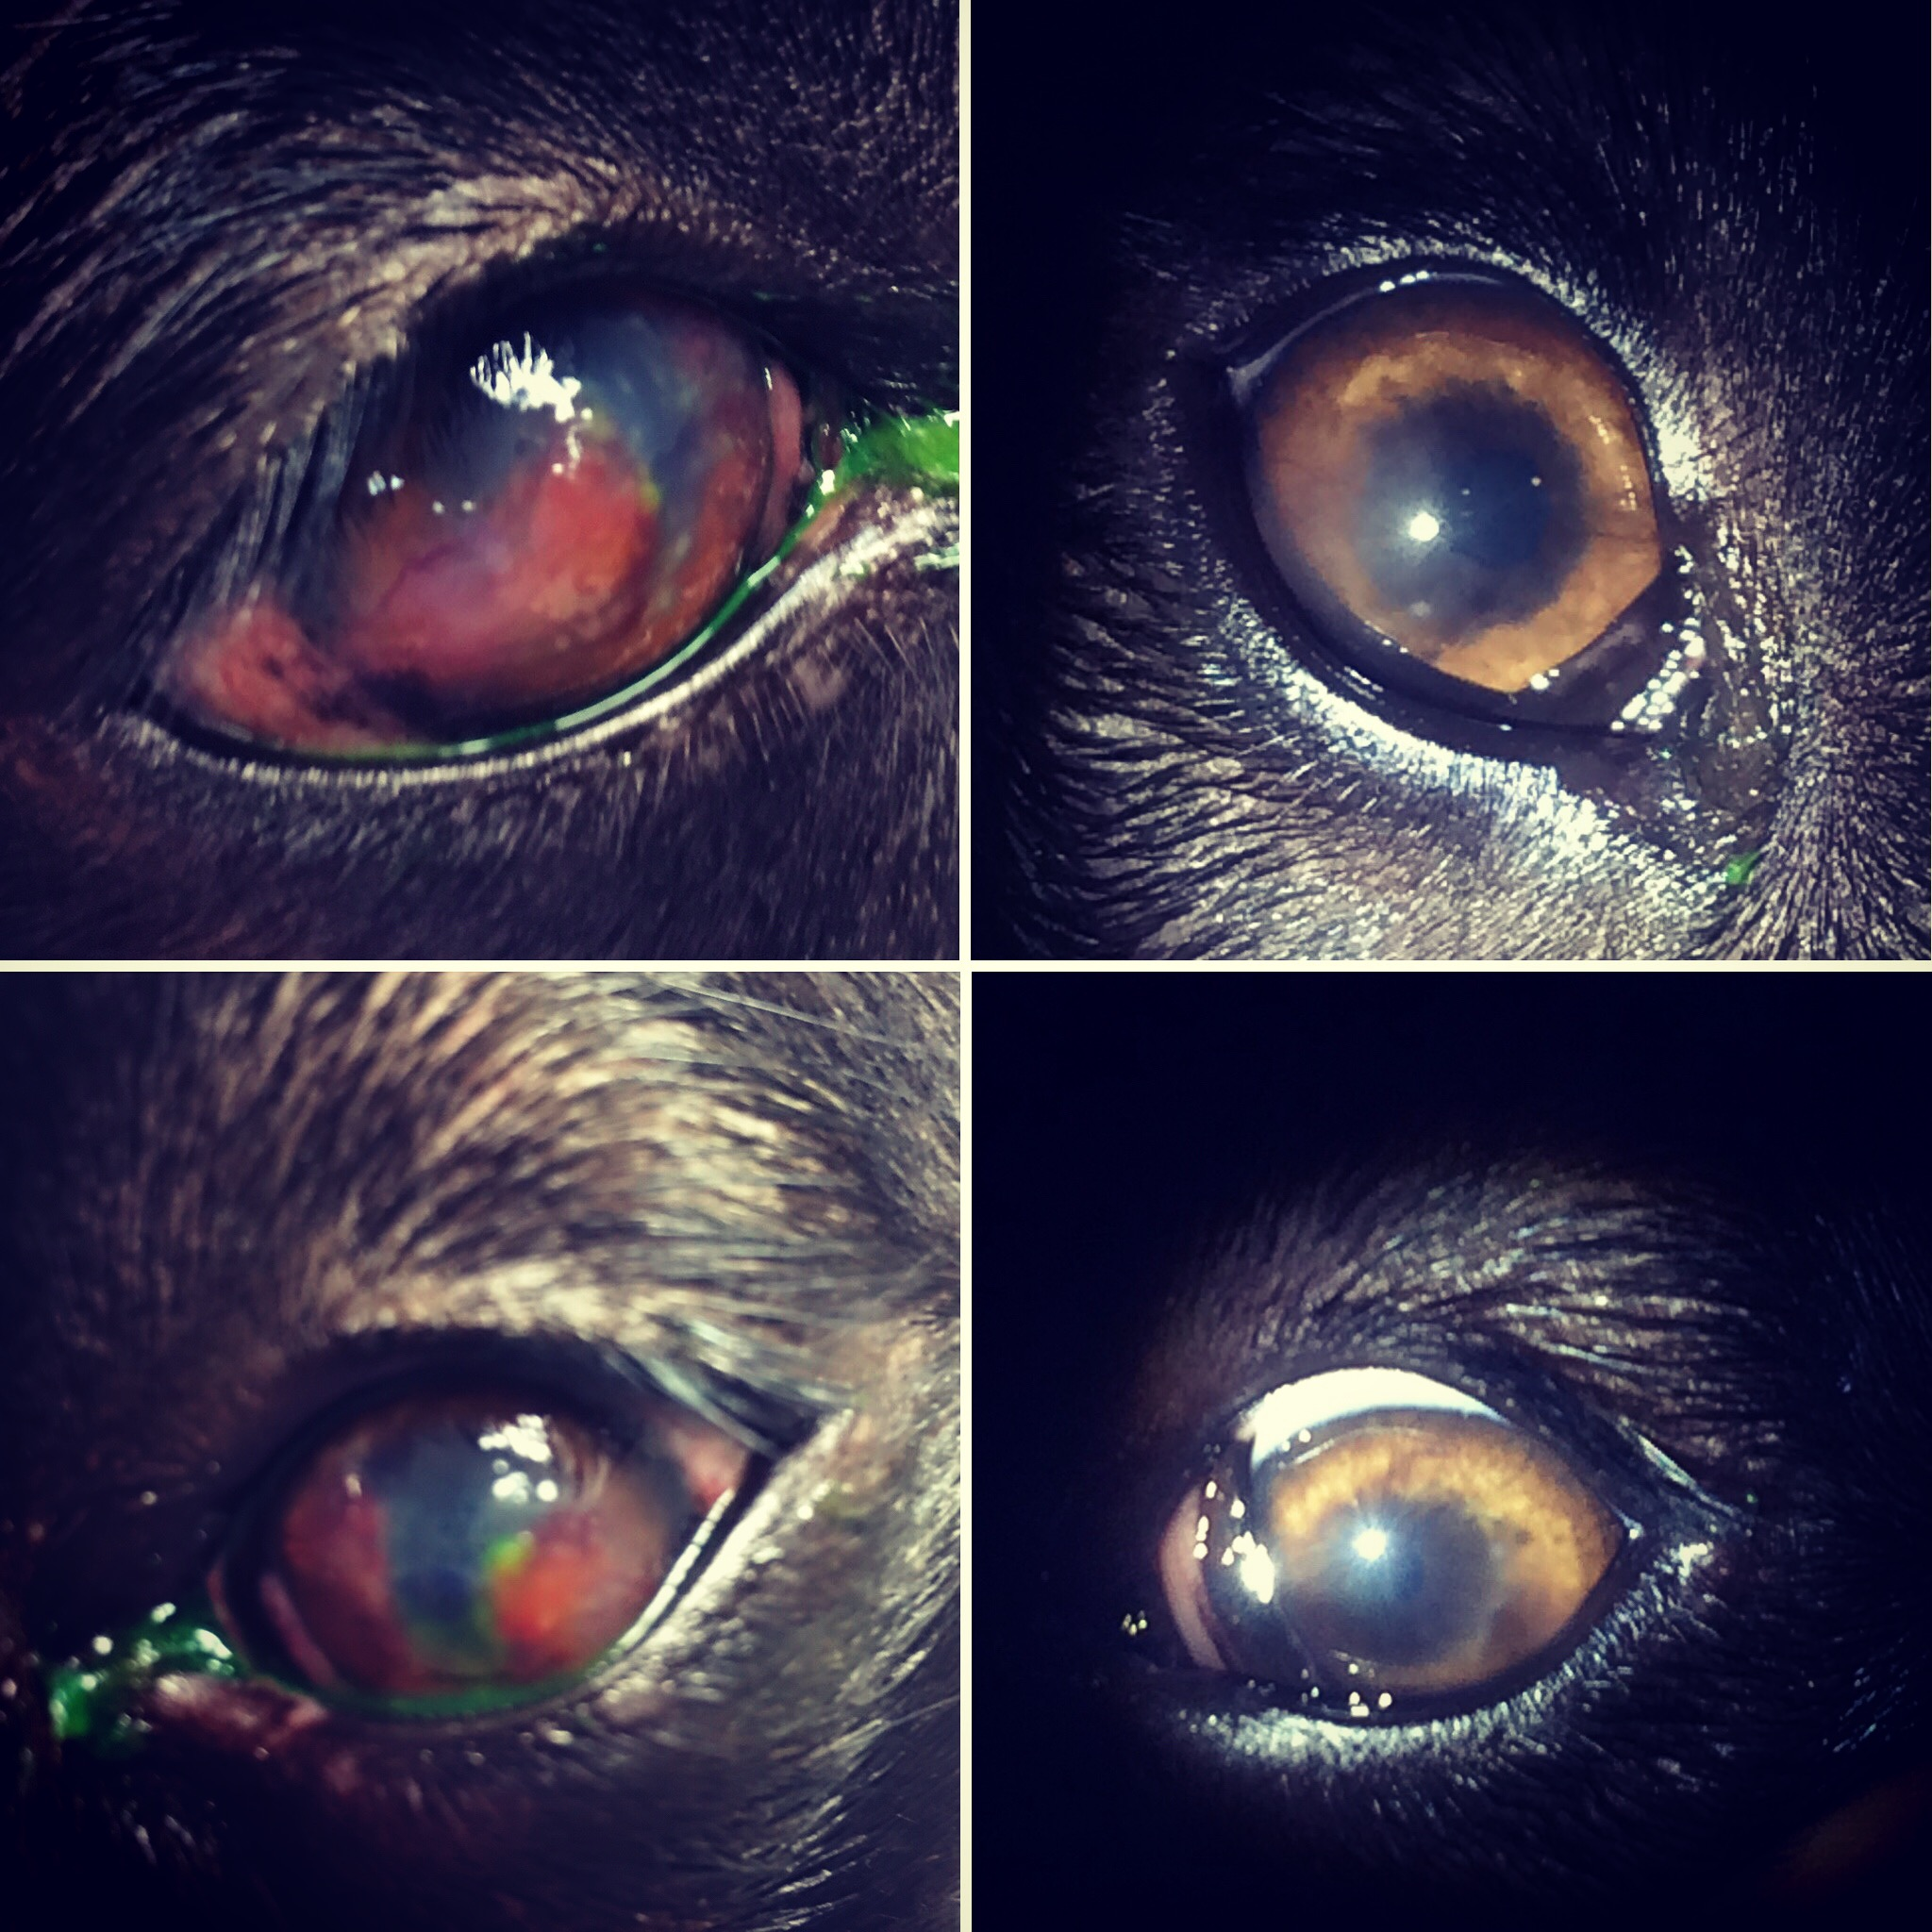 What is Chronic Superficial Keratitis (CSK)?      CSK (also referred to as pannus or degenerative pannus)  is a slowly progressive disease of the canine cornea, characterized by pigmentation, vascularization, and opacification.  There is also a form of this disease which affects the third eyelid called plasmoma.  CSK is seen predominantly in the German shepherd dog and greyhound, but sporadic cases occur in other breeds as well.                                                          Causes  The exact mechanism is unknown, but several factors are involved. The fact that certain breeds are more prone to the disease suggests a genetic predisposition. Ultraviolet (UV) radiation plays an important role as an inciting and propagating factor in the disease. In fact, dogs living at higher altitudes where exposure to UV light is greater are often more severely affected. Immunologic factors are also believed to be contributory. An allergic-type reaction to environmental allergens or against the cornea itself may be involved in the disease process.    Symptoms    The most common sign is infiltration of the cornea with blood vessels and pigment. This gives the eye a visible discoloration. The change normally begins at the outside or bottom of the cornea and moves inward. In some cases the pigment can be so severe that it leads to vision loss. Reddening, thickening, and pigment loss of the third eyelid characterize a subclass of CSK, called plasmoma. Plasmoma is often associated with mucoid discharge from the eye.      Diagnosis  Clinical signs may be enough for diagnosis however it is necessary to rule out other diseases that can have a similar clinical appearance but markedly different treatment. In some cases it is necessary to perform cytology to confirm the diagnosis.   Treatment  A cure is not possible, but life-long medications and prevention of excessive exposure to UV light will prevent the disease from progressing. Common medications include eye drops that control the growth of blood vessels and pigment. These may be steroids or T-cell inhibitors or a combination of both.  Initially the drops may be used quite frequently but over time these can generally be decreased to only once or twice a day therapy. Dogs on long-term medications should be monitored to prevent secondary infections. In very severe cases surgery to decrease the scaring of the cornea may be needed in the initial stages of treatment.   Monitoring   The condition waxes and wanes throughout life, so periodic follow-up is indicated to ensure that your pet is on the most appropriate therapy.